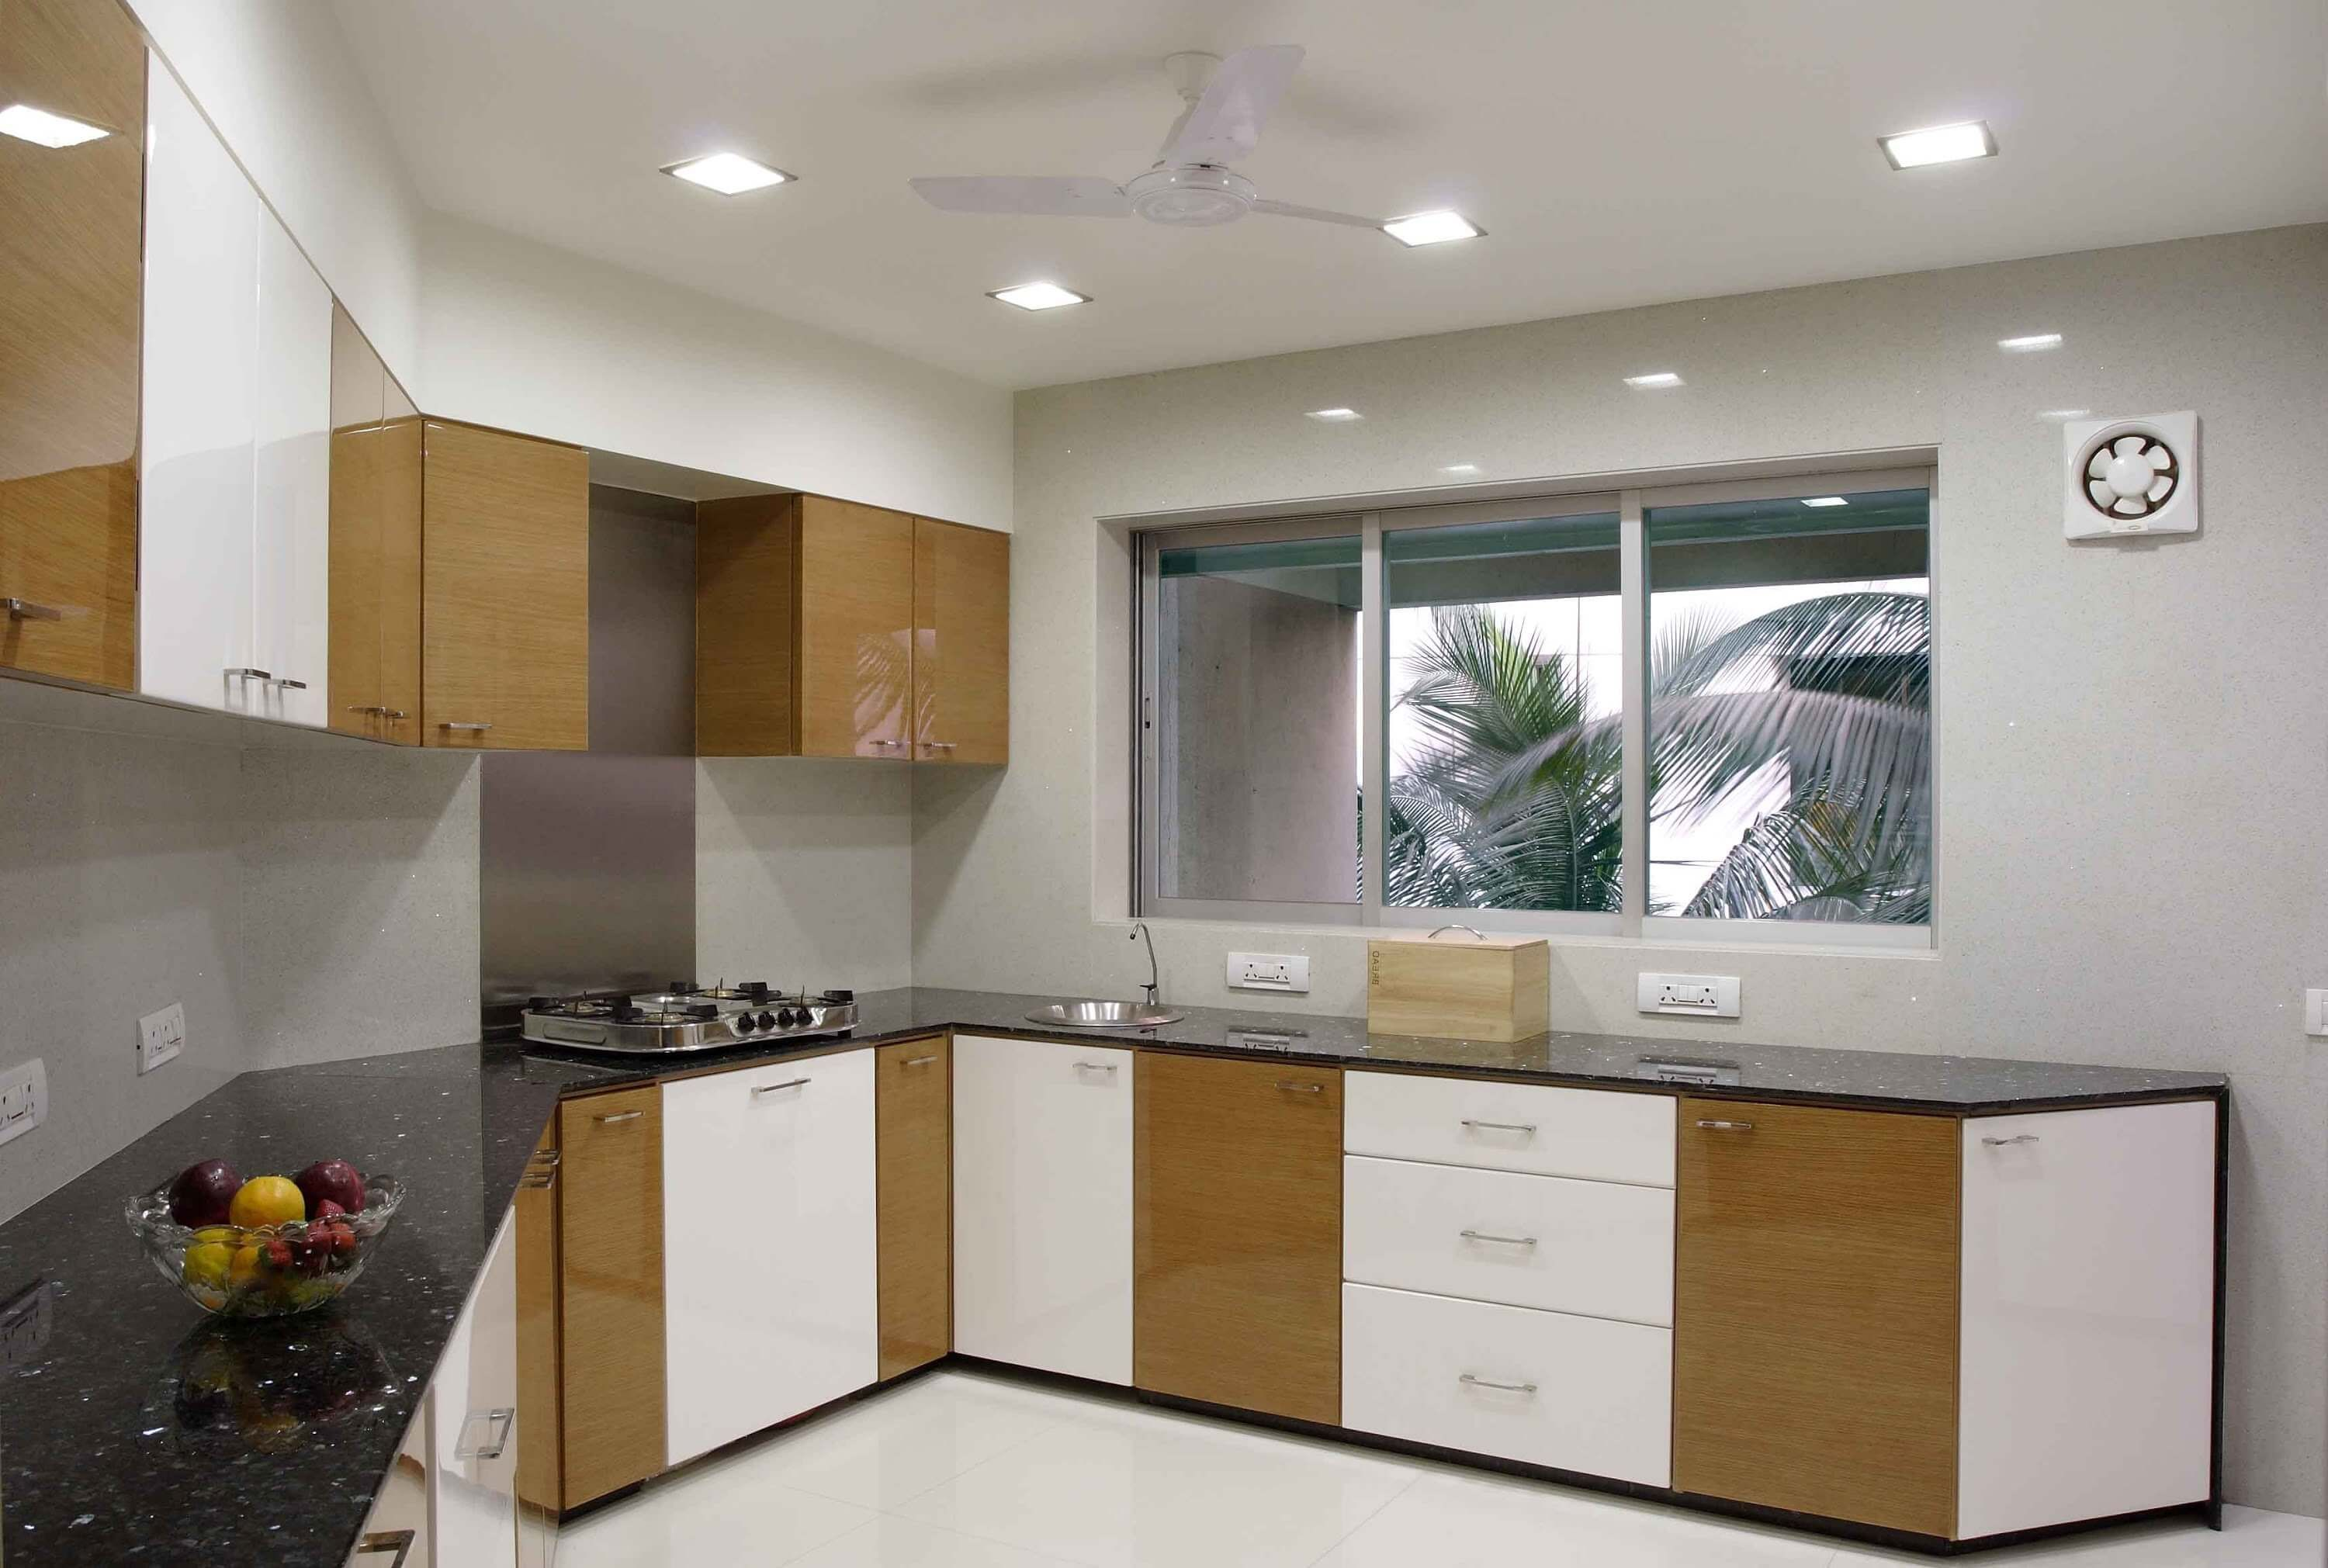 55 Modular Kitchen Design Ideas For Indian Homes Kitchen Design Small Kitchen Modular Kitchen Cabinets Color Combination